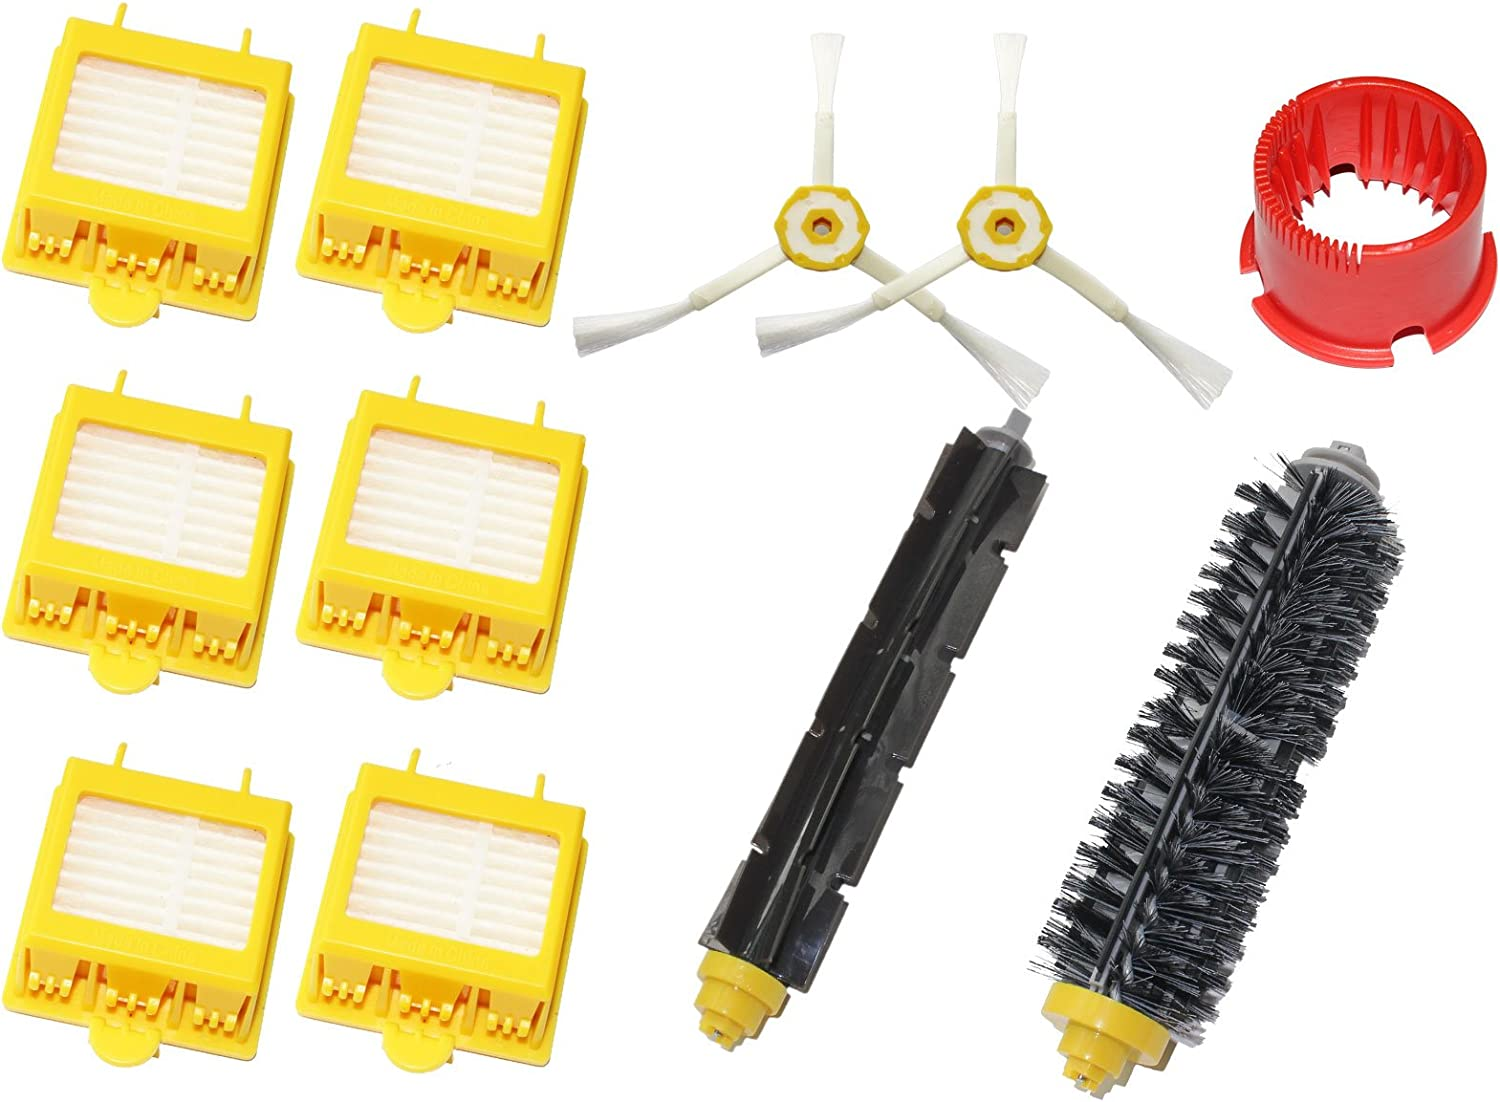 Upstart Battery Replacement for iRobot Roomba 700 Series Vacuum Cleaner Accessory Kit - Kit Includes: 6 Filters, 2 Side Brushes, 1 Flexible Beater Brush, 1 Bristle Brush & 1 Cleaning Tool